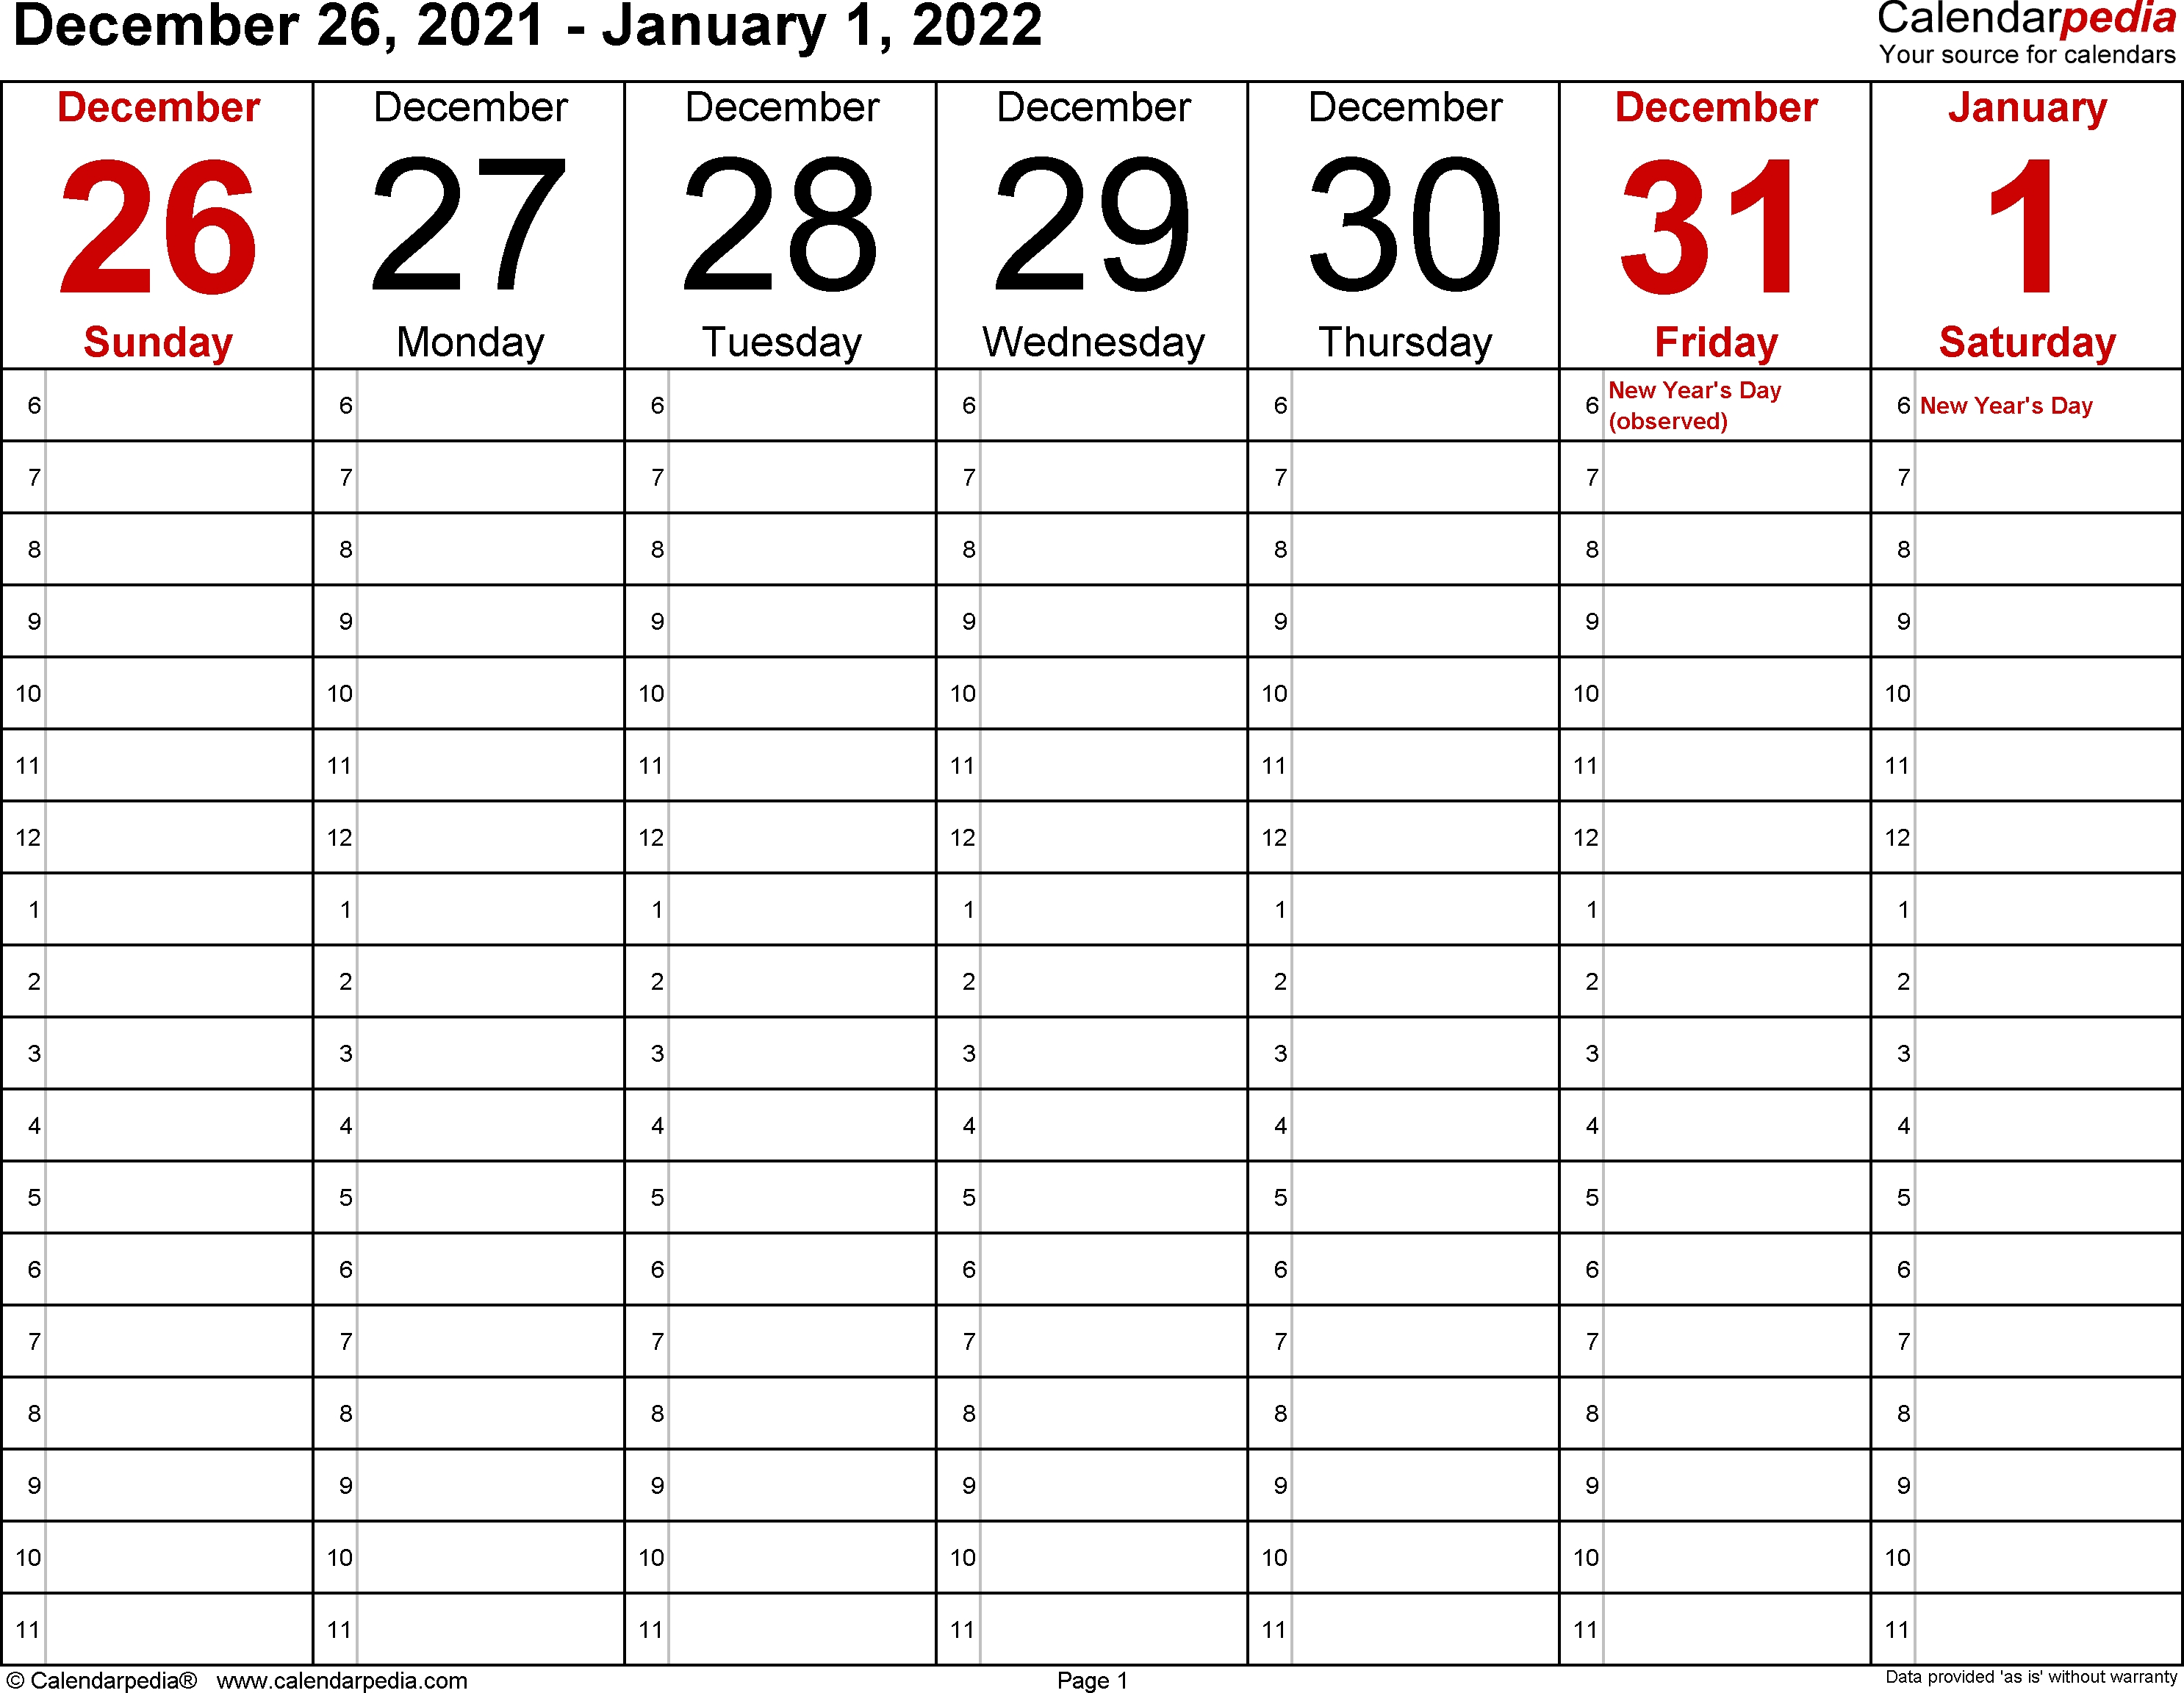 Weekly Calendars 2022 For Pdf - 12 Free Printable Templates